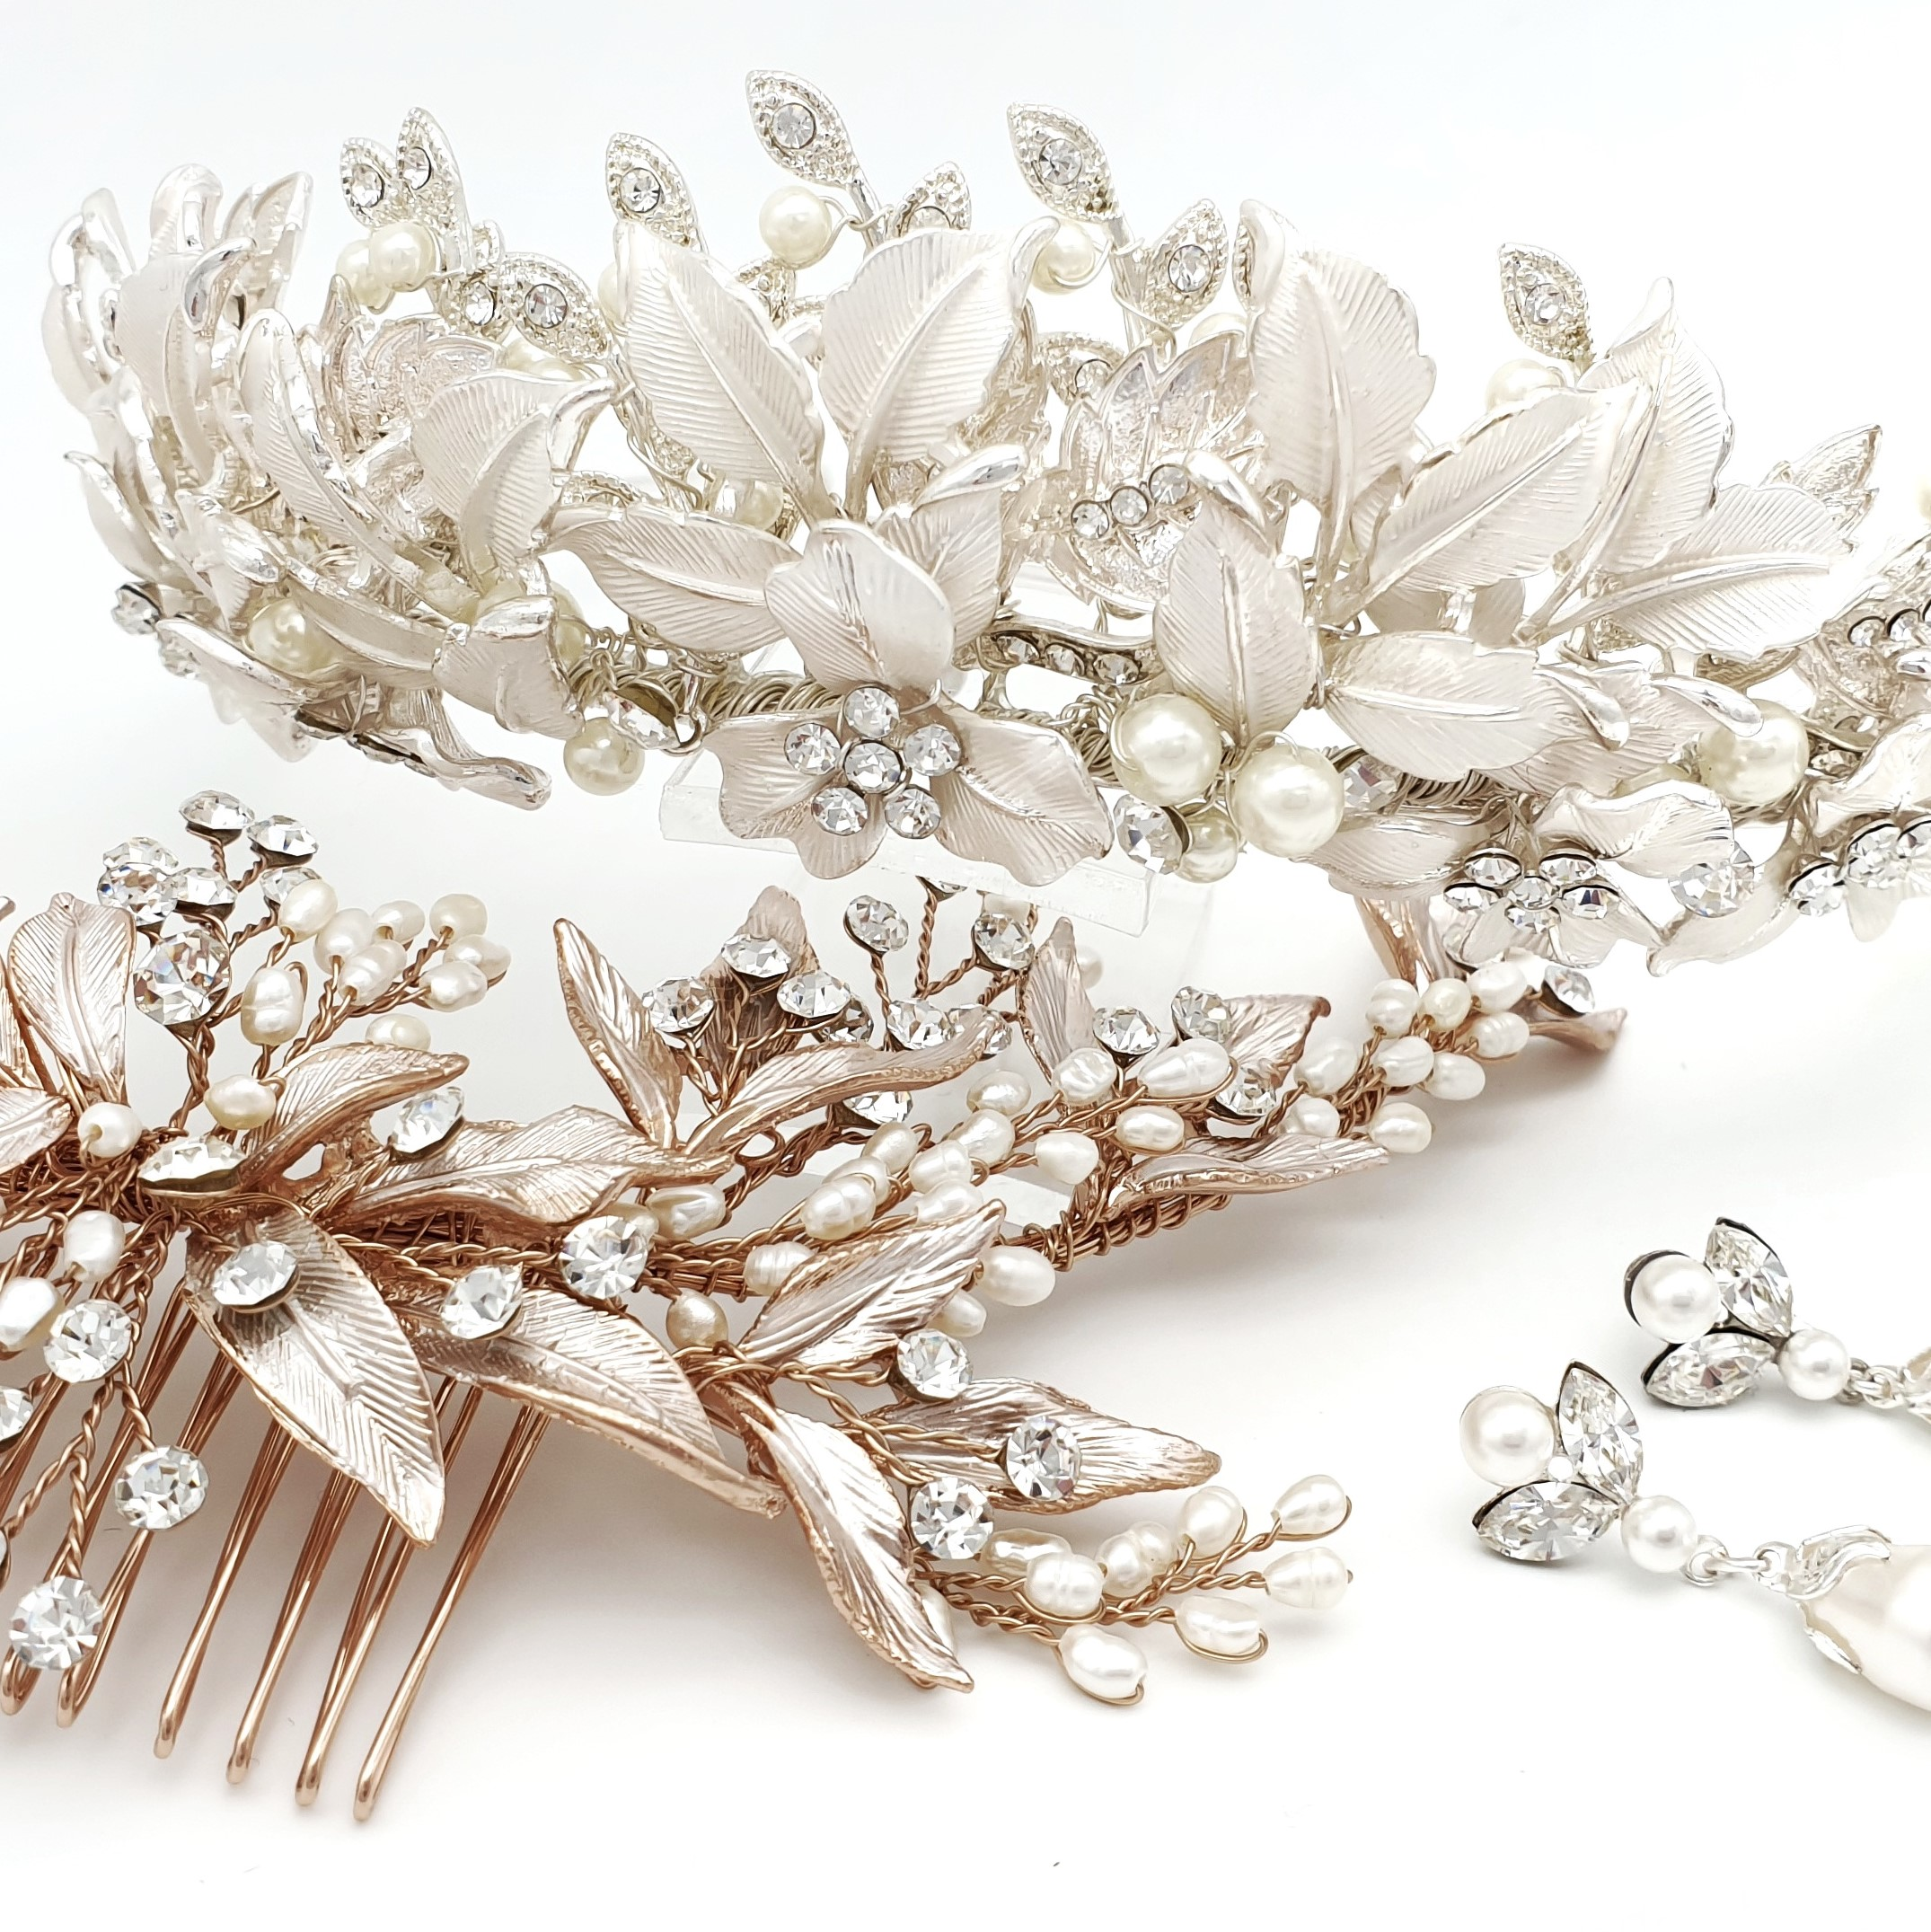 Pearl bridal accessories